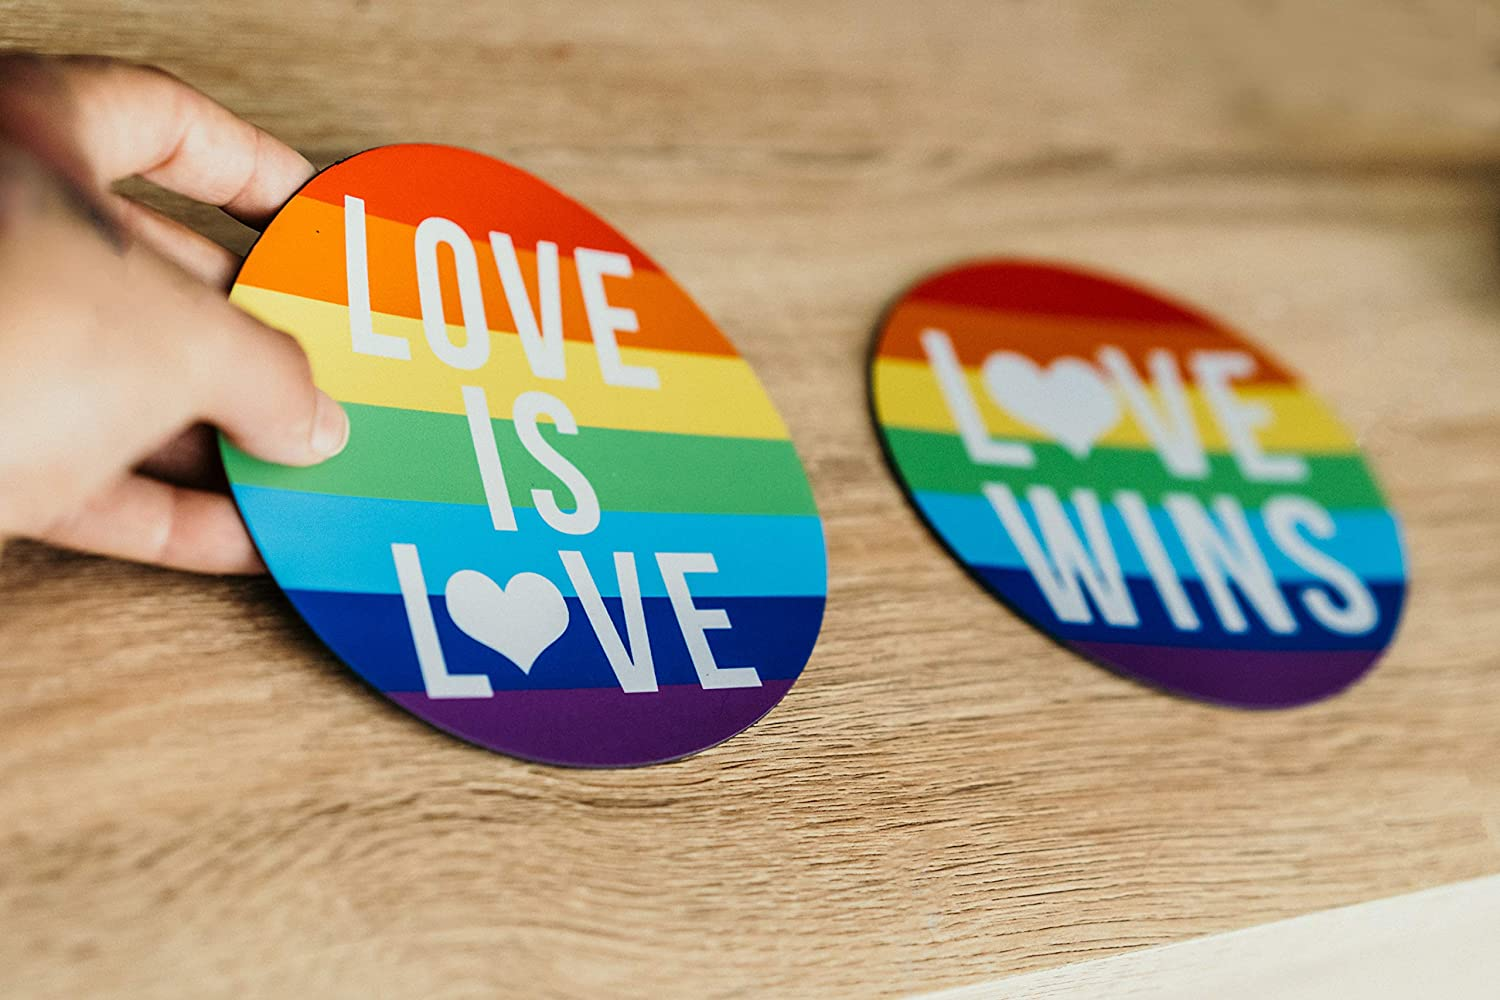 refrigerators or to Show Your Equality Rights as an Ally Gift 2-Pack Magnets for Gay Pride Magnetic Stickers. Large 5 inch Rainbow Flag for car Bumpers fridges Use for Lesbian Marriages